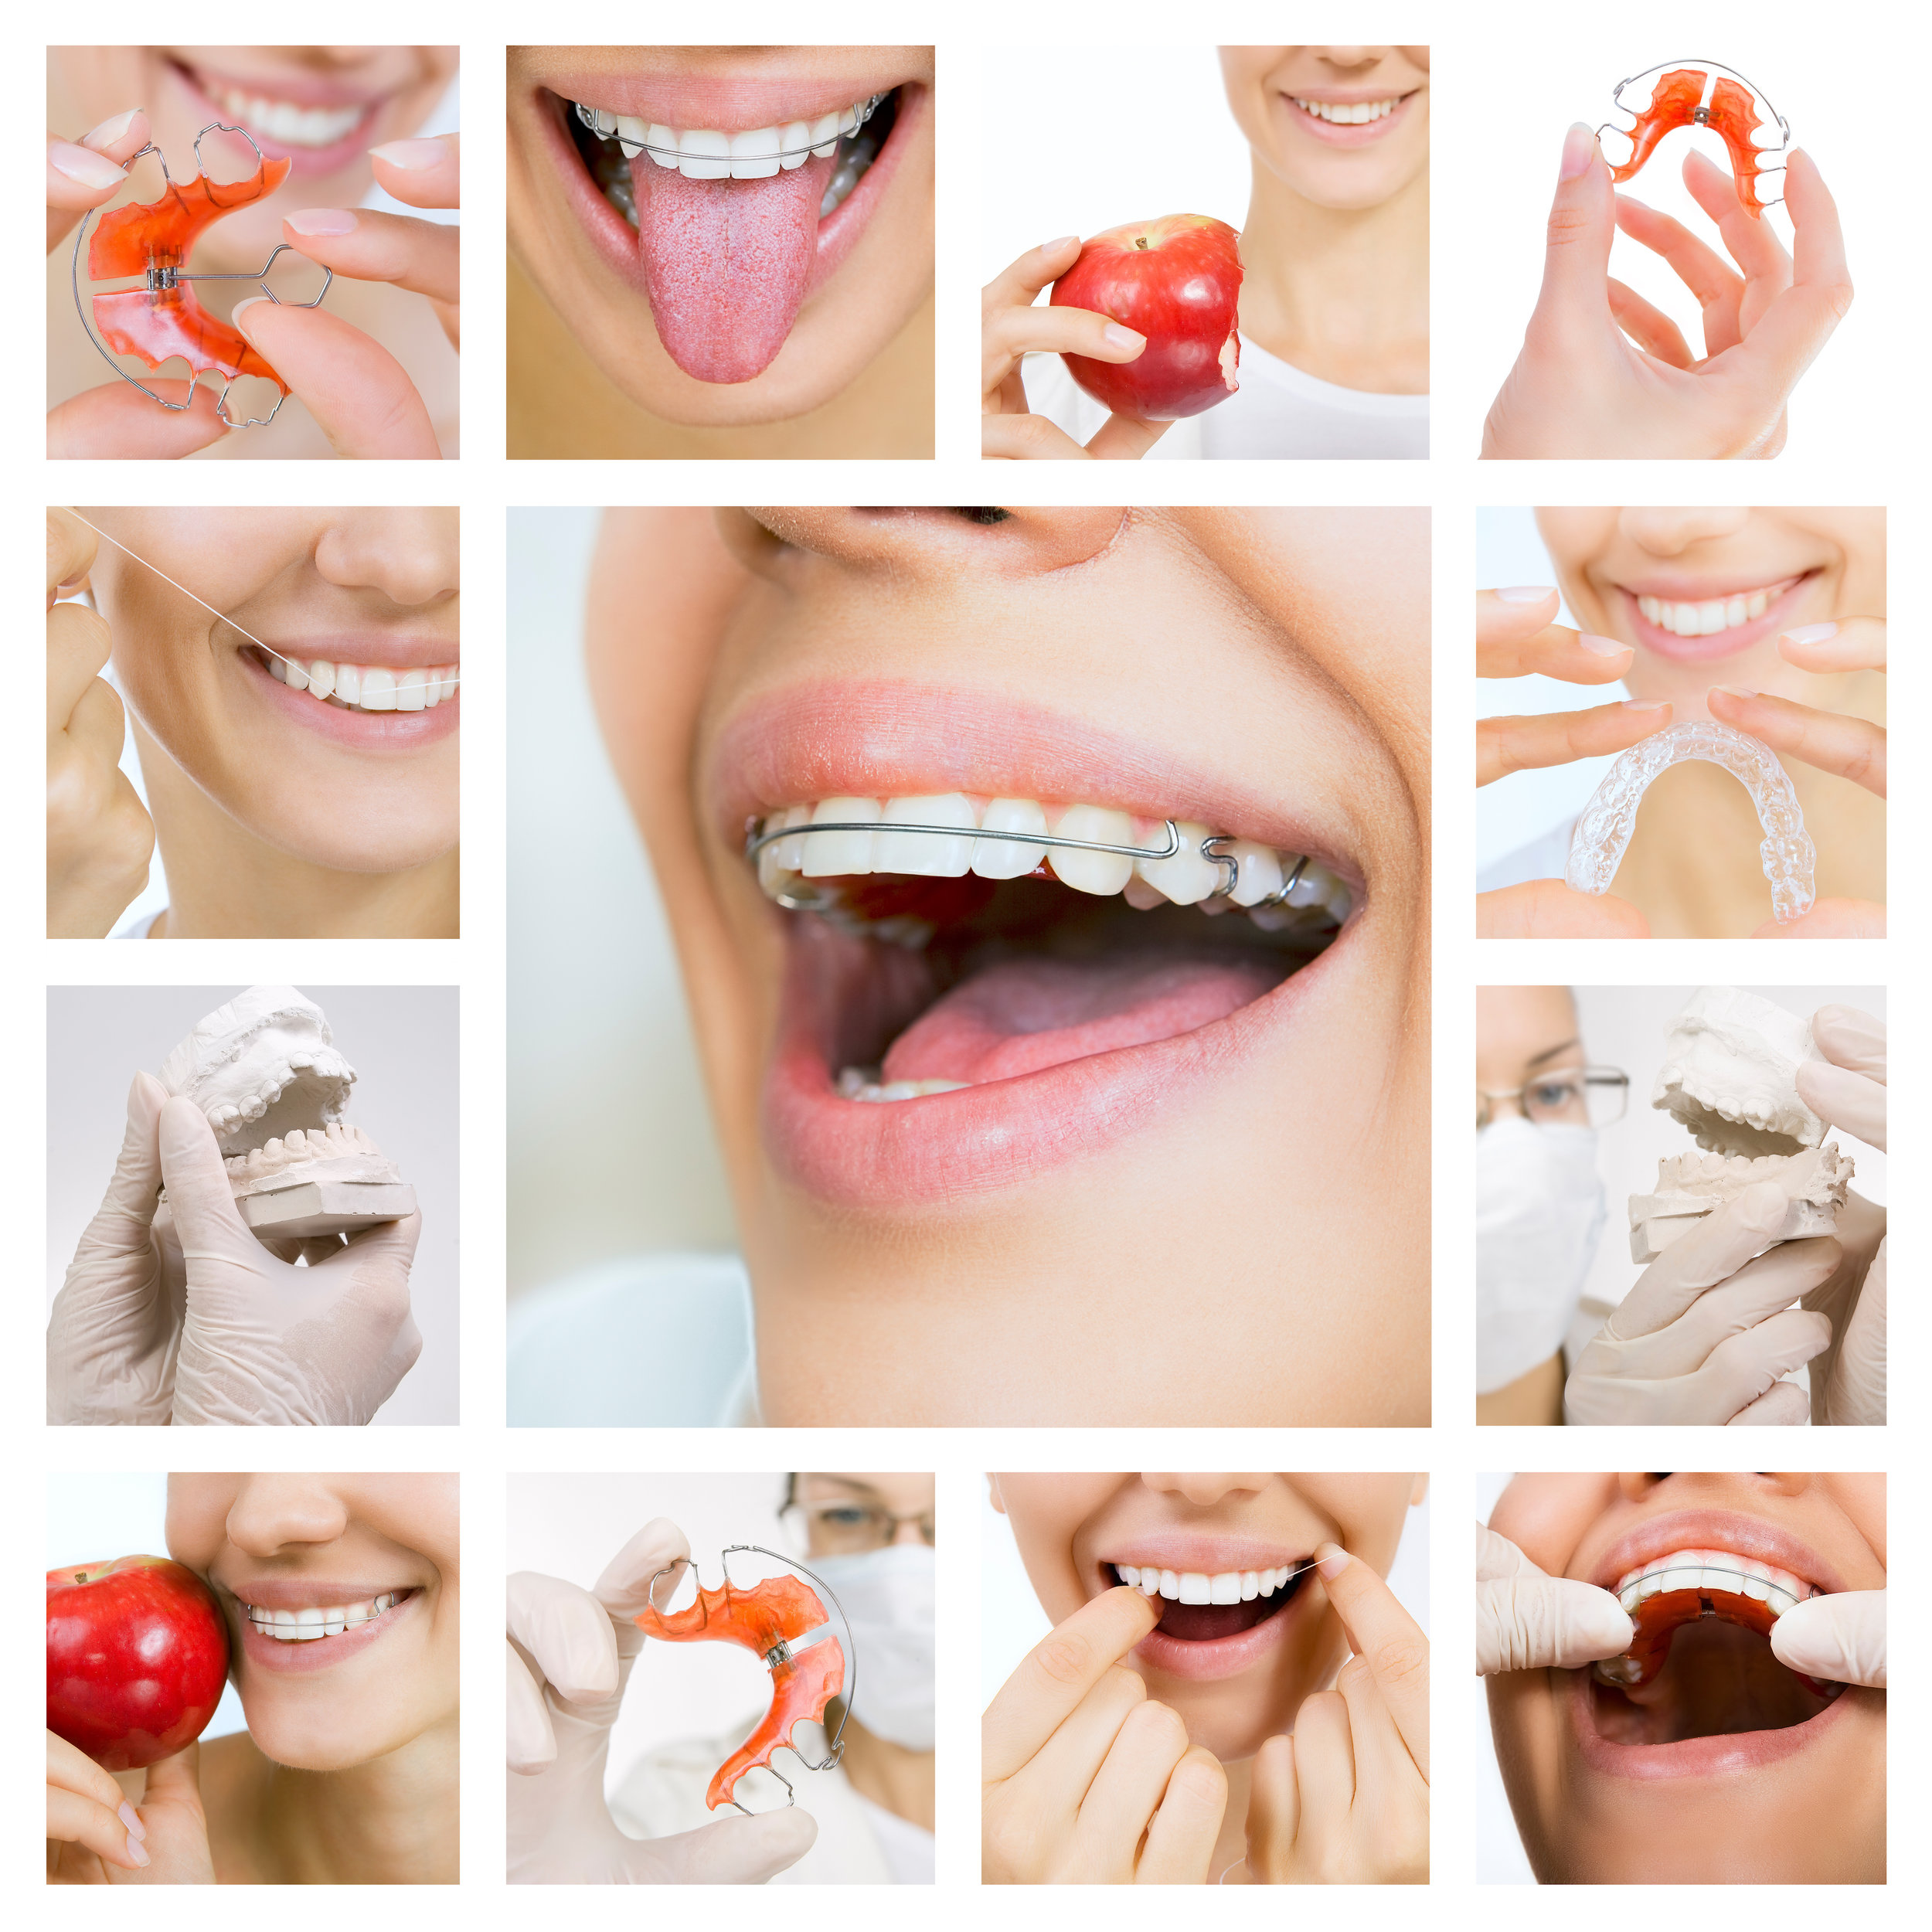 Retainer Guidelines - YAY!!! You've finally finished treatment and gotten your braces off! We want to be the first ones to congratulate you! You look like a million bucks and you're ready to go tackle the world. Just like with braces we customize your retainer. We offer every type of retention system and will make our recommendation based on your initial malocclusion and what has the greatest potential for relapse. There are a few things we want you to remember. Even though we would love to keep seeing you as often as we have been, we want you to keep those teeth and your bite as perfect as it is now! To accomplish this, your retainer must be worn every night for the first year, and then at lest 3-4 nights per week for the rest of your life. You got this, we believe in YOU!